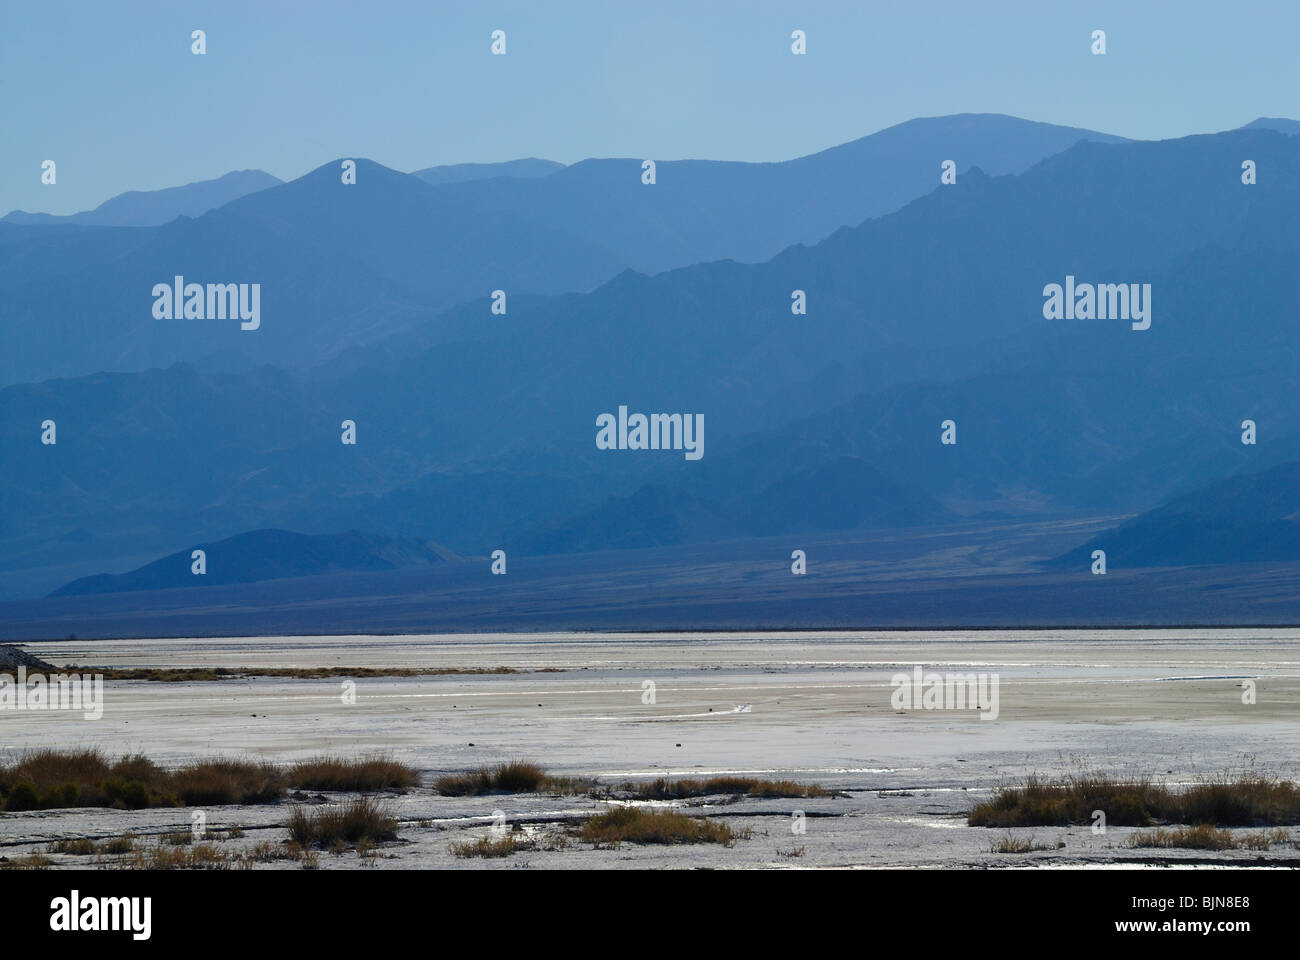 Shadows of Death Valley, California state - Stock Image